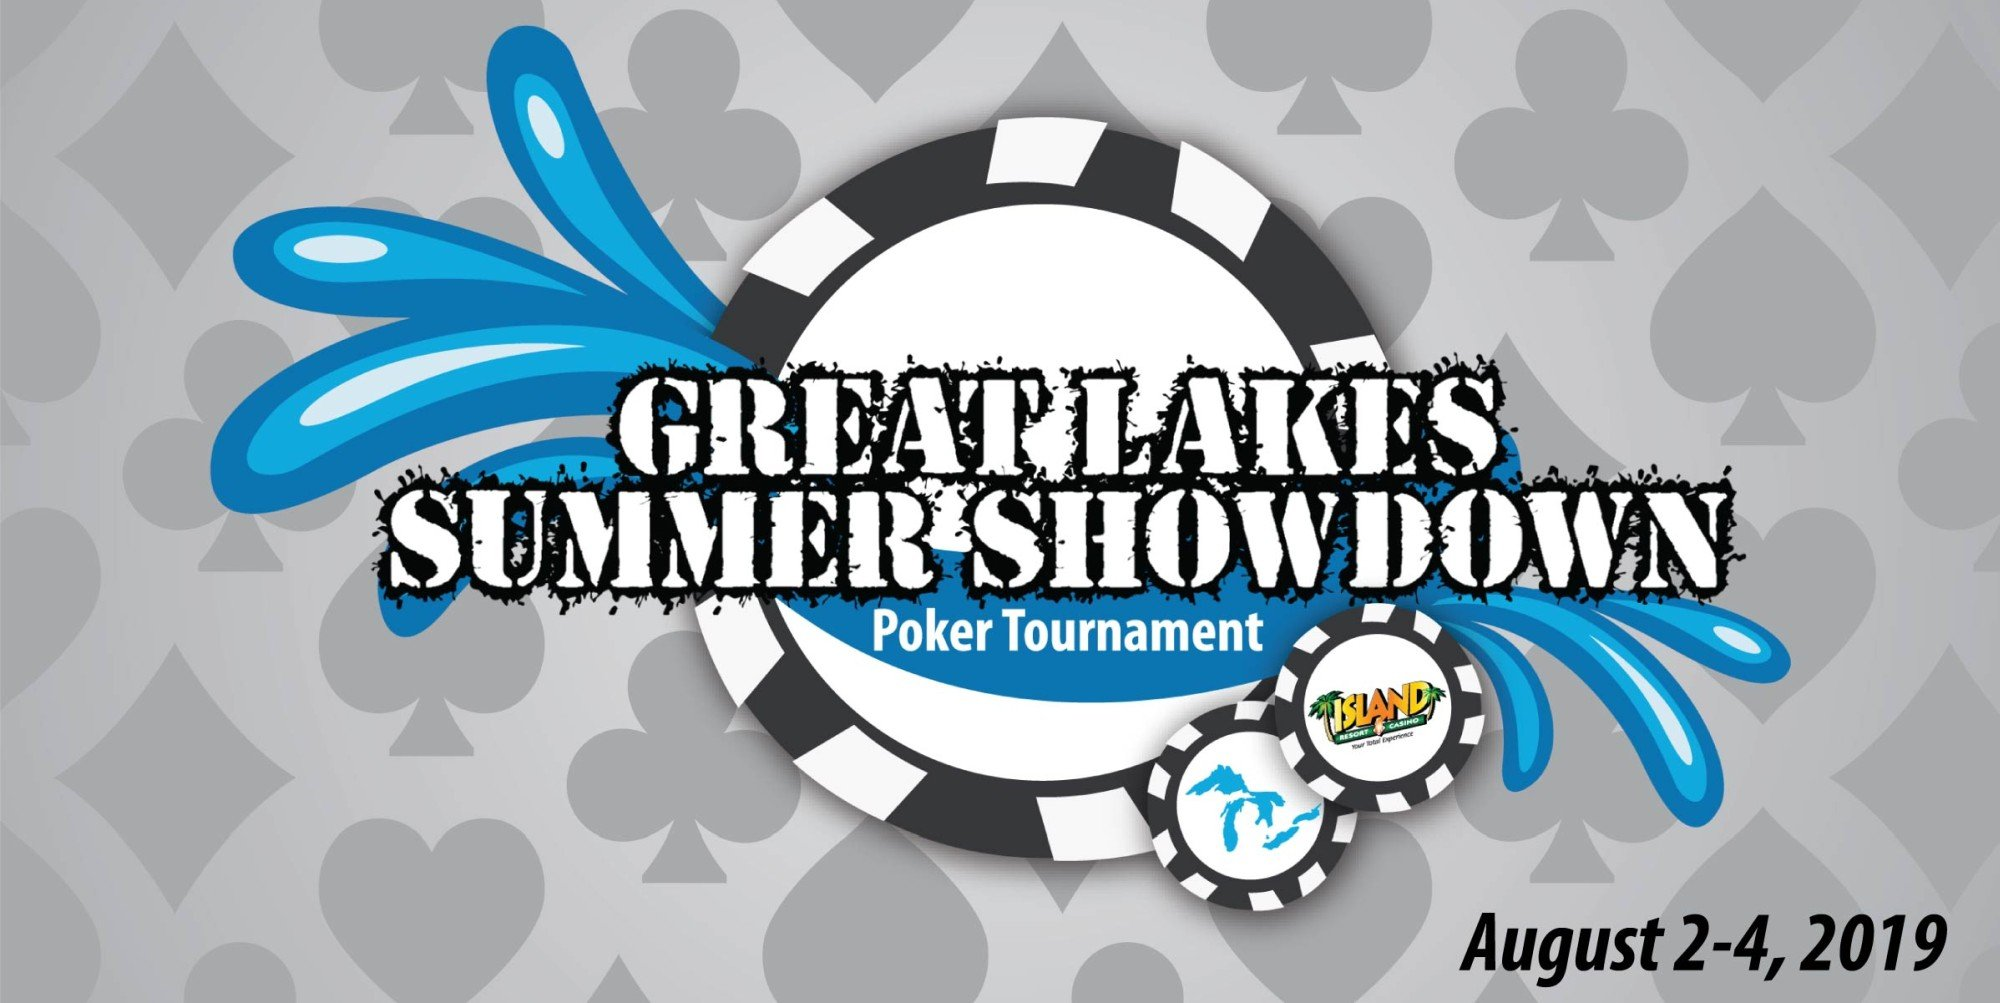 The Great Lakes Summer Showdown Poker Tournament is back at the Island!